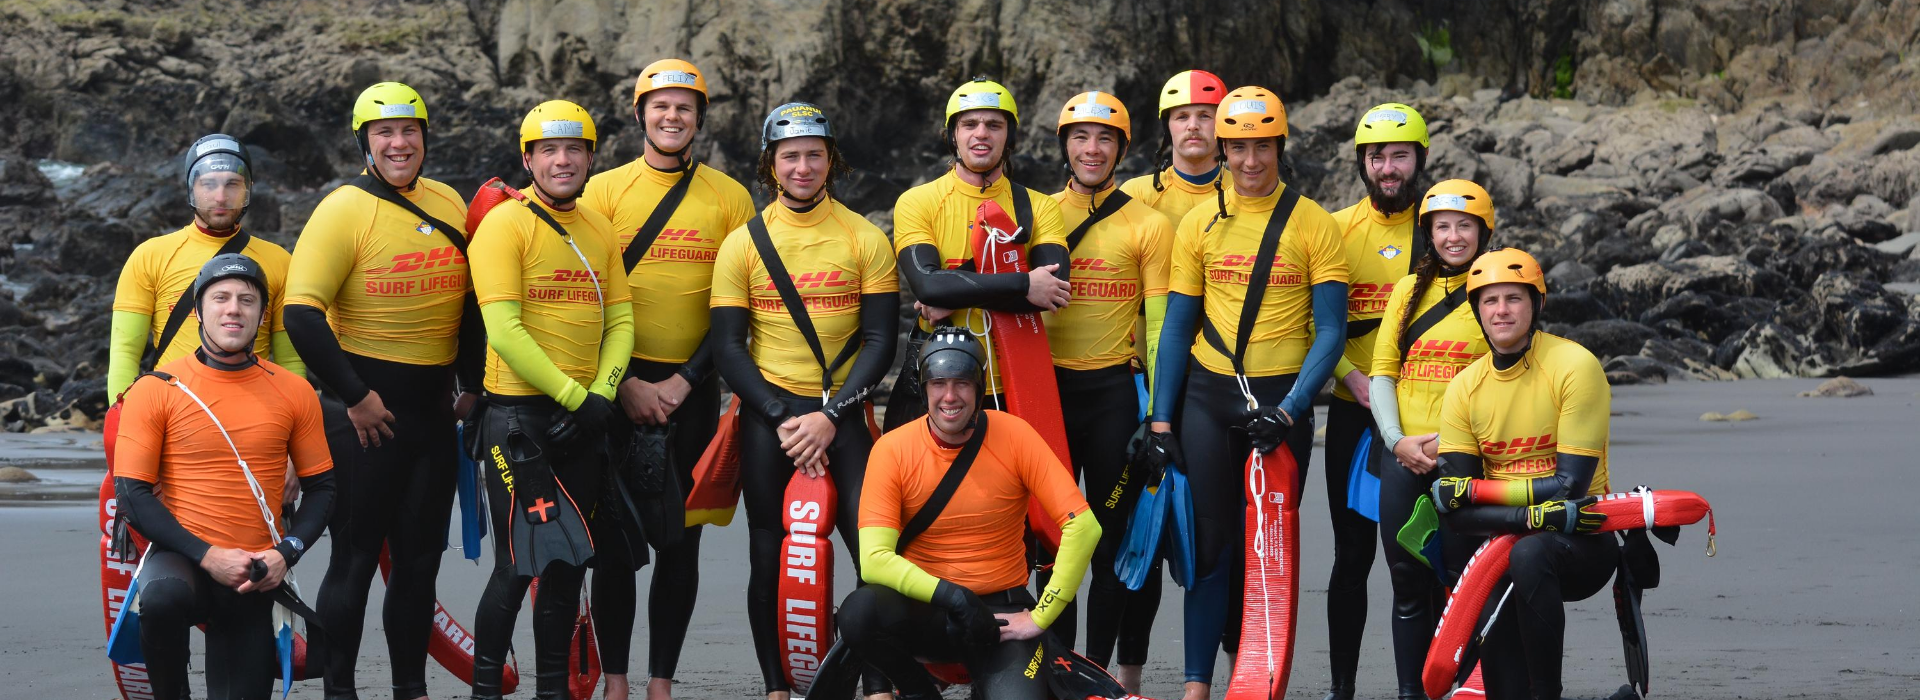 Lifeguards_Rescue Team Portrait